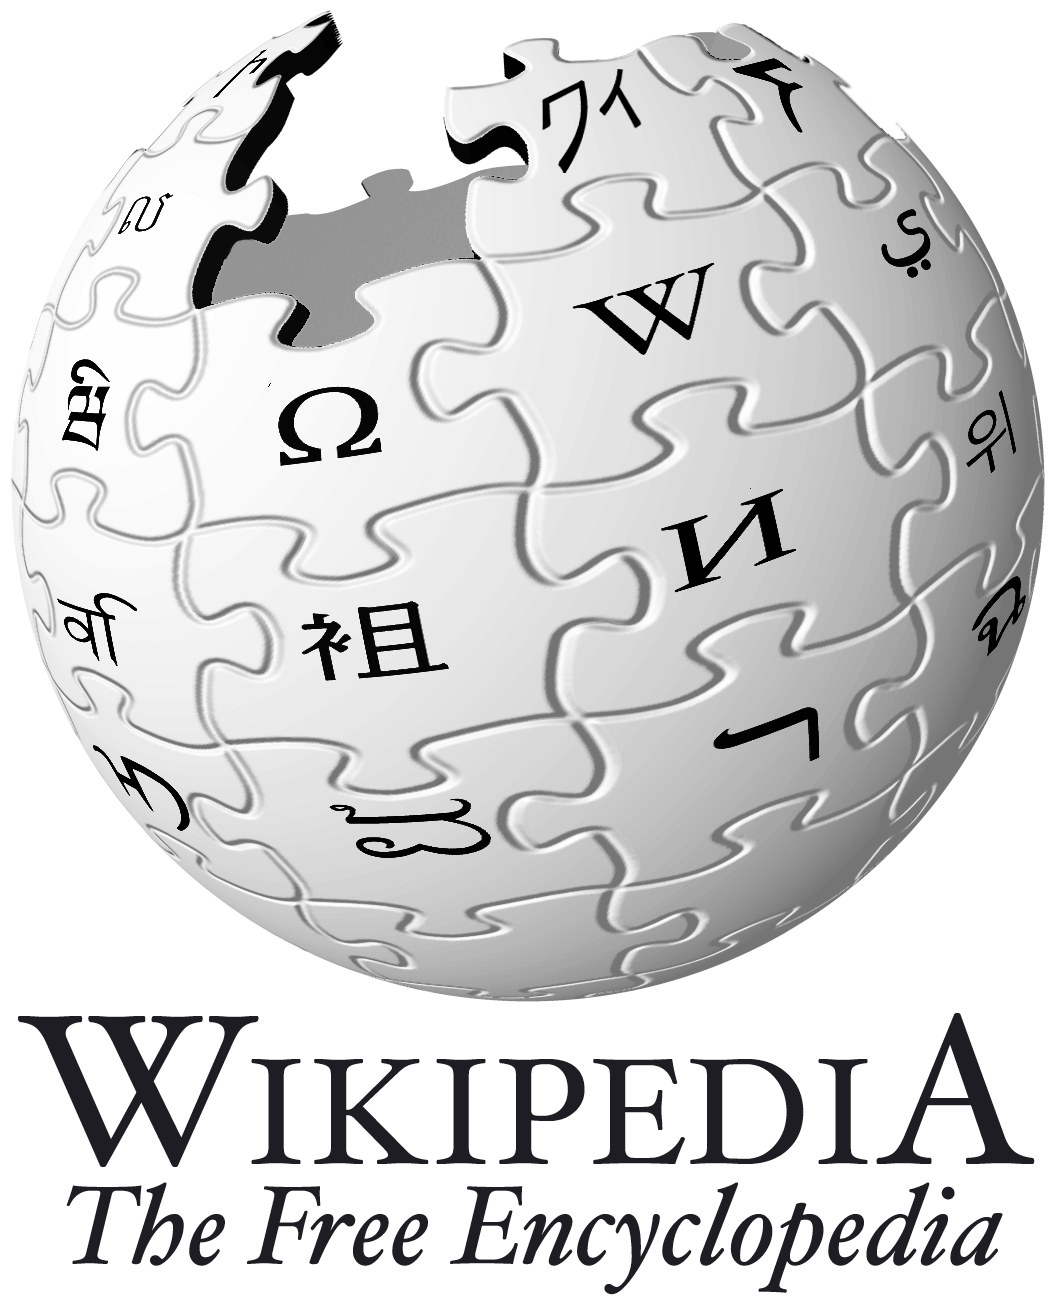 https://i1.wp.com/upload.wikimedia.org/wikipedia/commons/9/91/Nohat-logo-XI-big-text.png